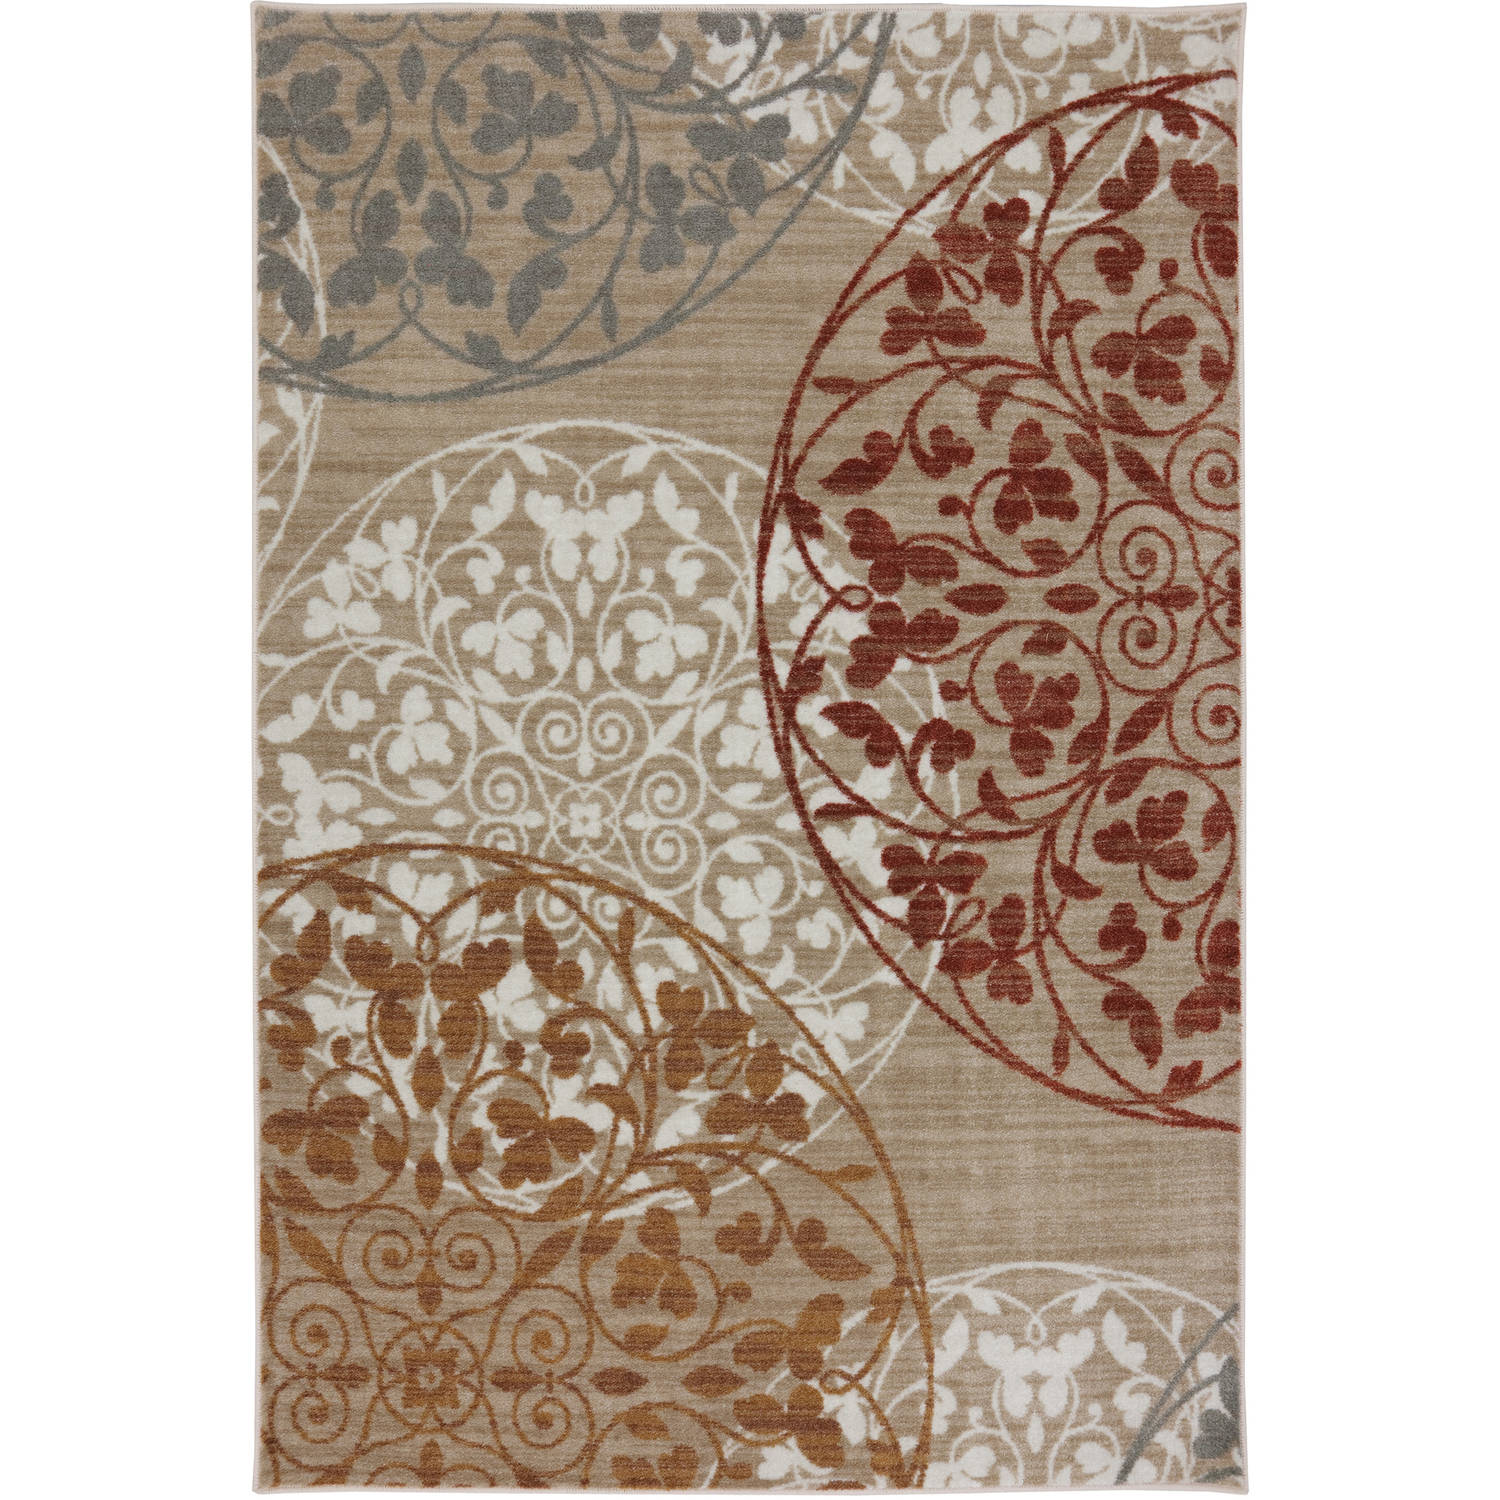 Mohawk Home Medallion Printed Area Rug